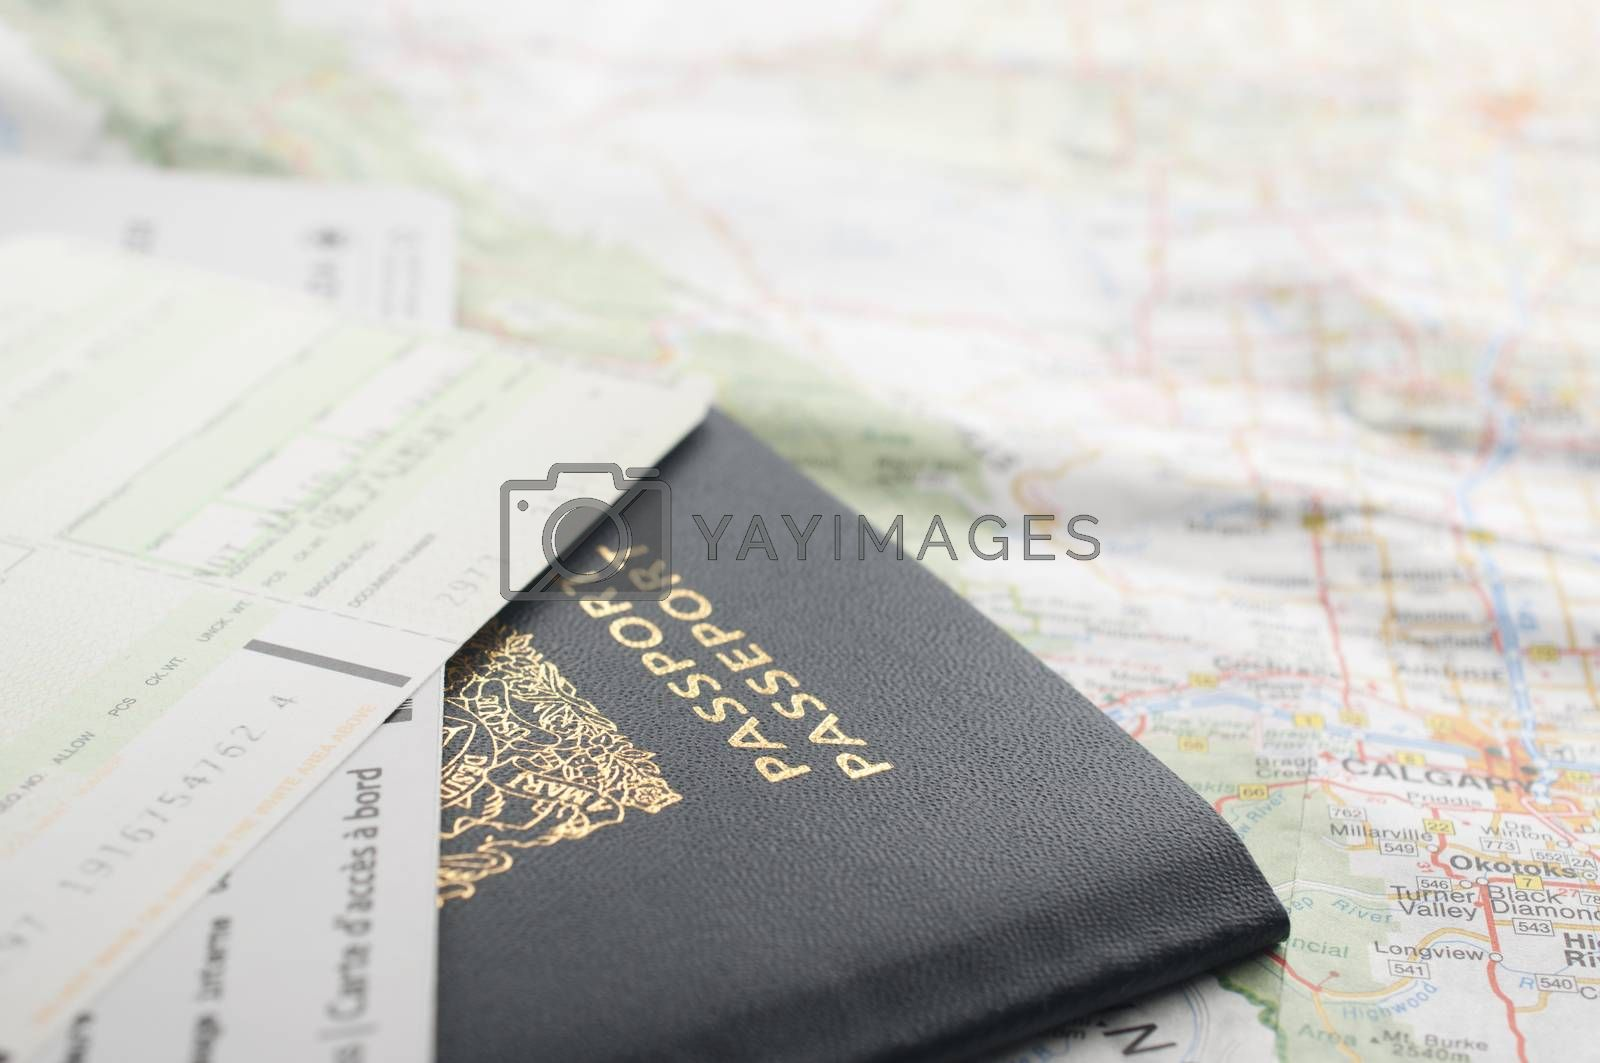 Carrying passport, board card and map ready to travel.